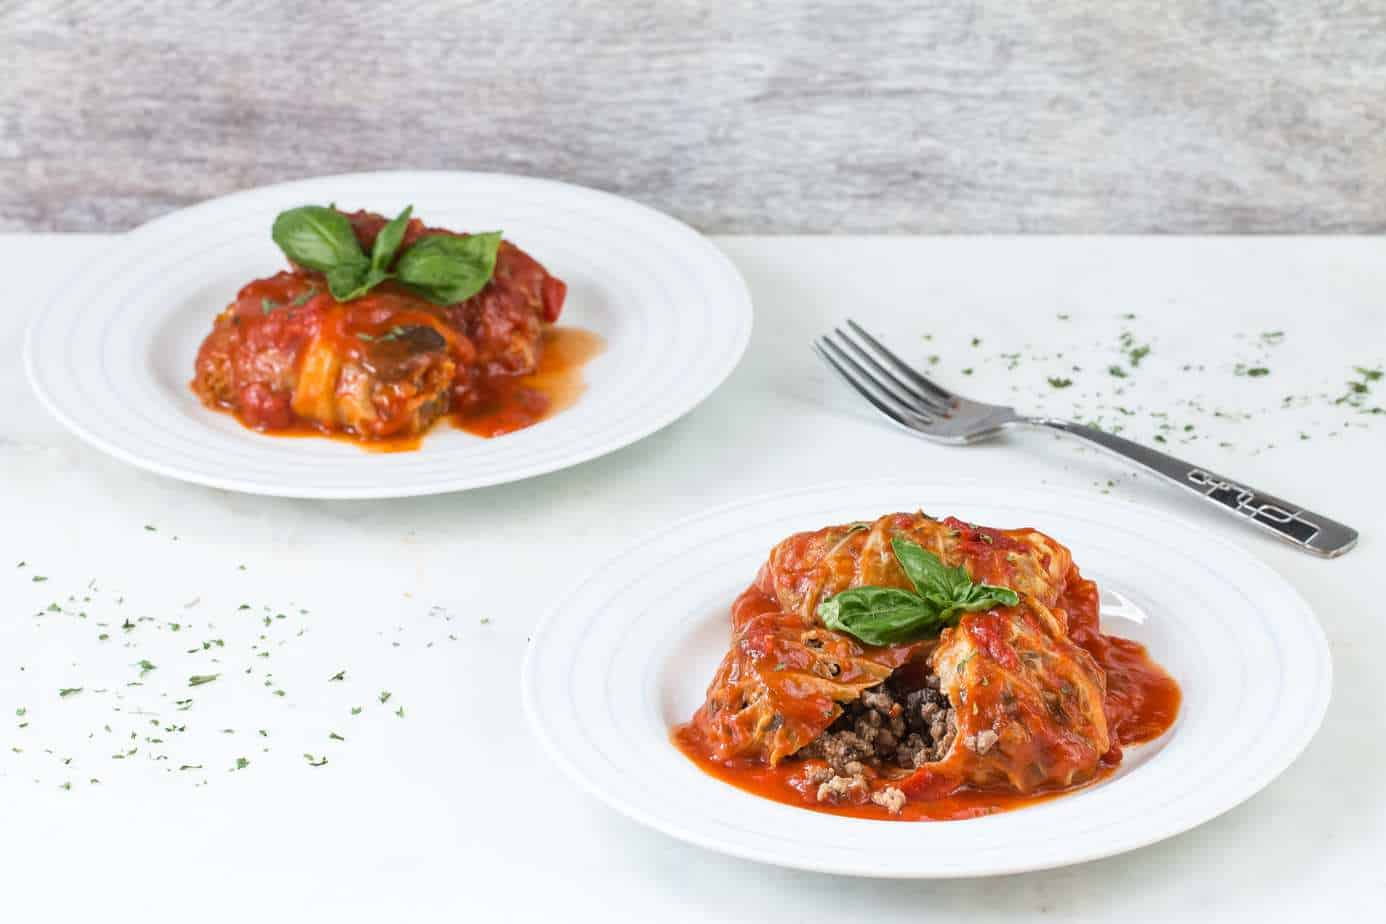 Cabbage Rolls with Beef and Mushroom in Tomato Sauce